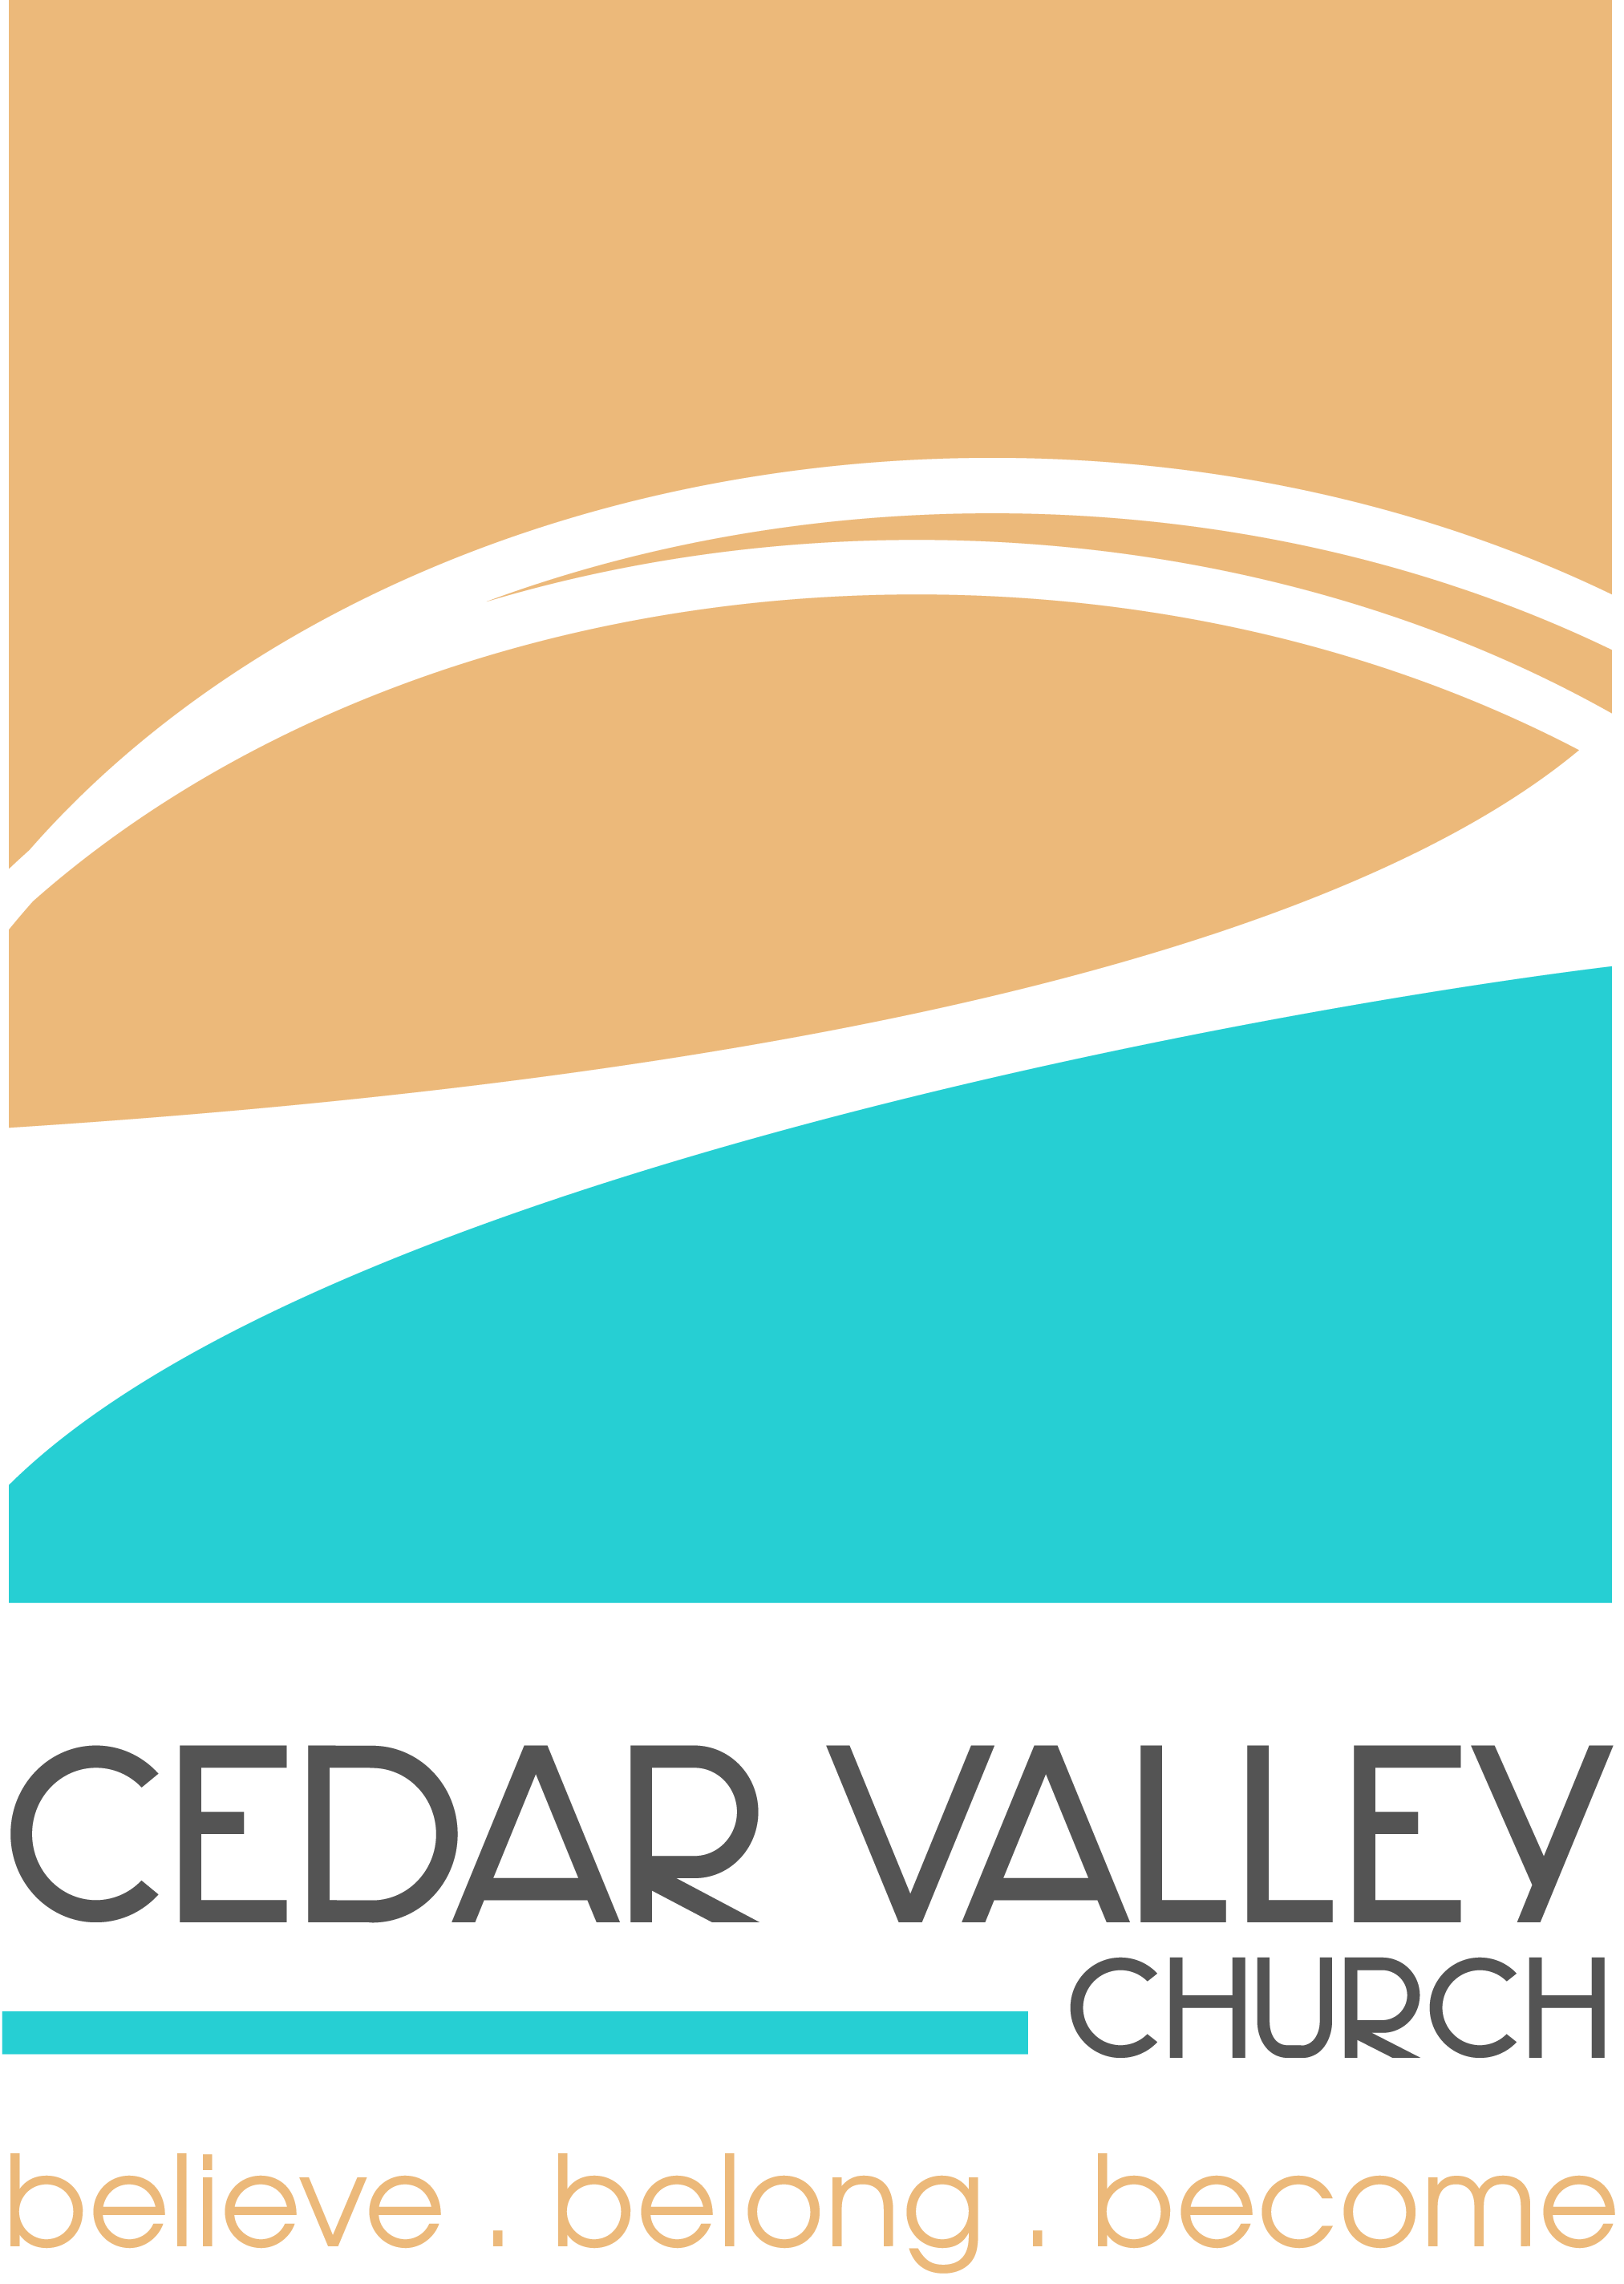 Cedar Valley Church